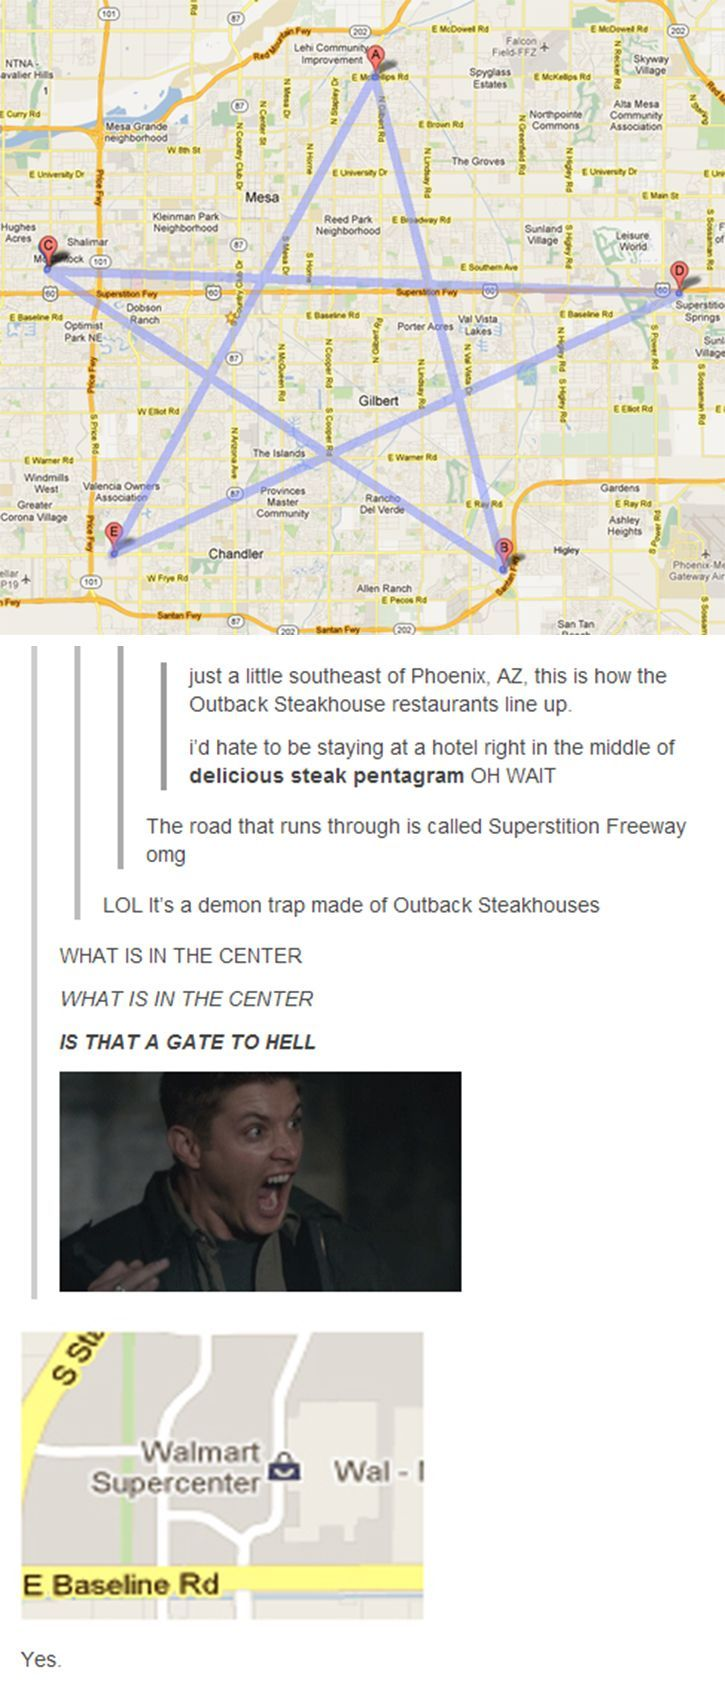 I miss supernatural...its a gate to hell!